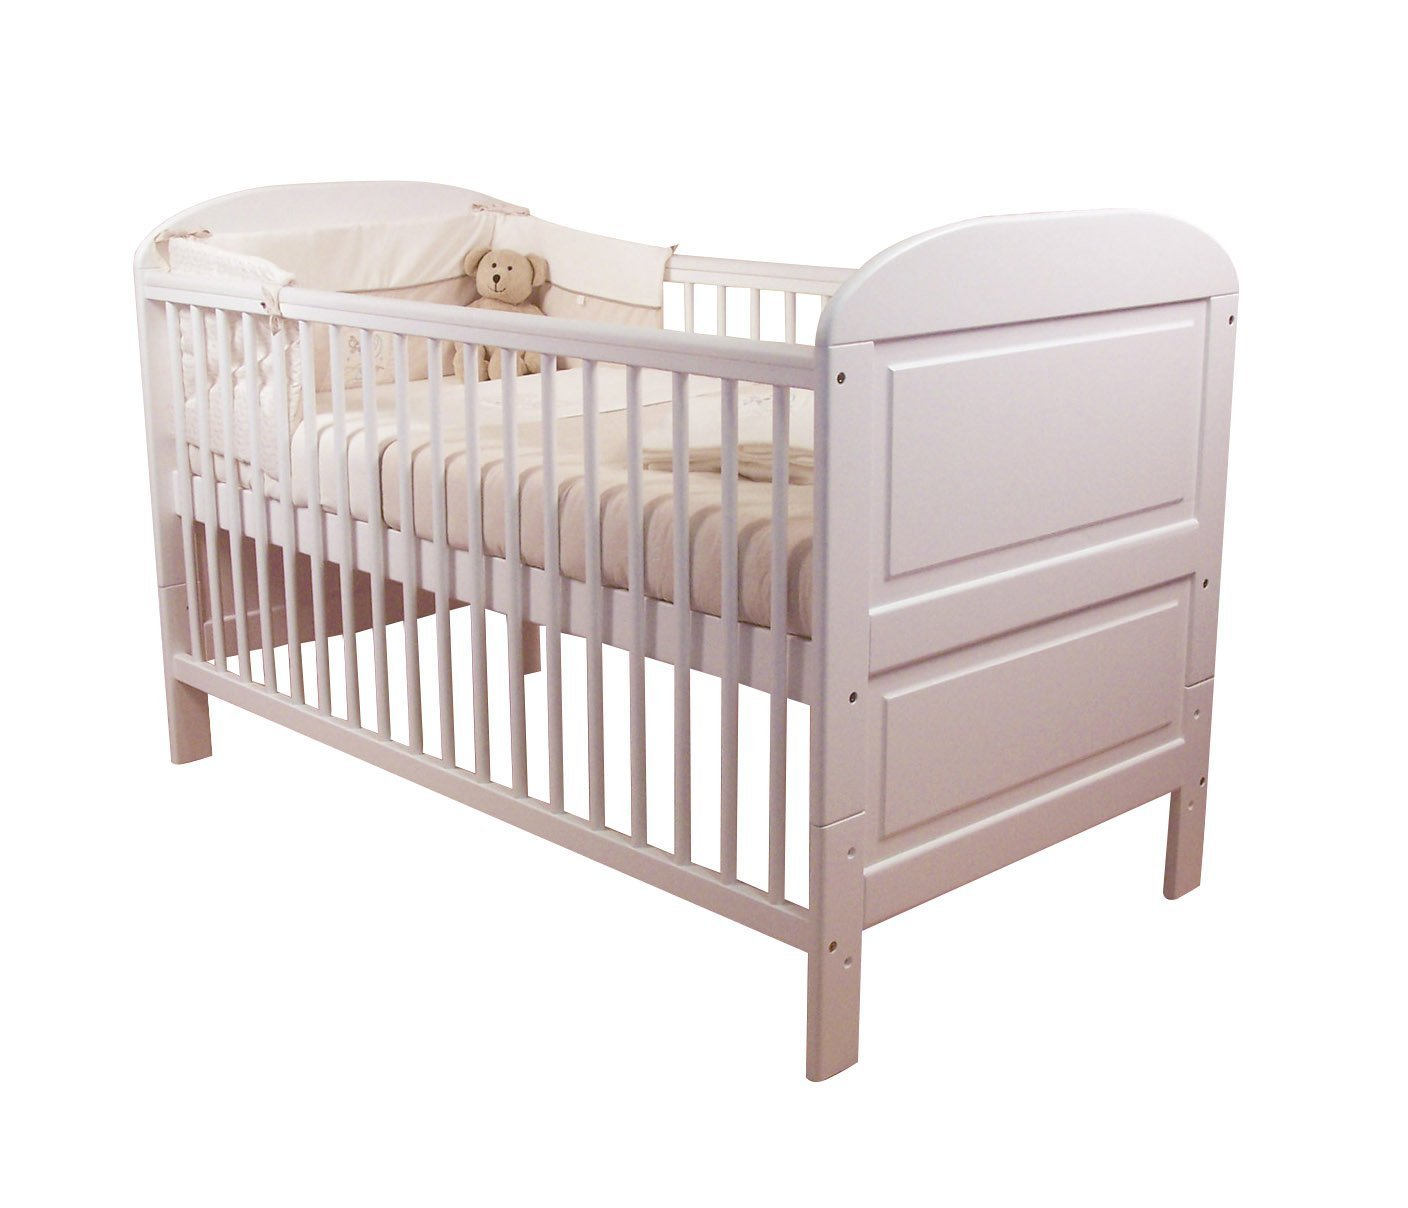 Fantastic 5 Best Co Sleeping Cot For Babies Sleep Safe